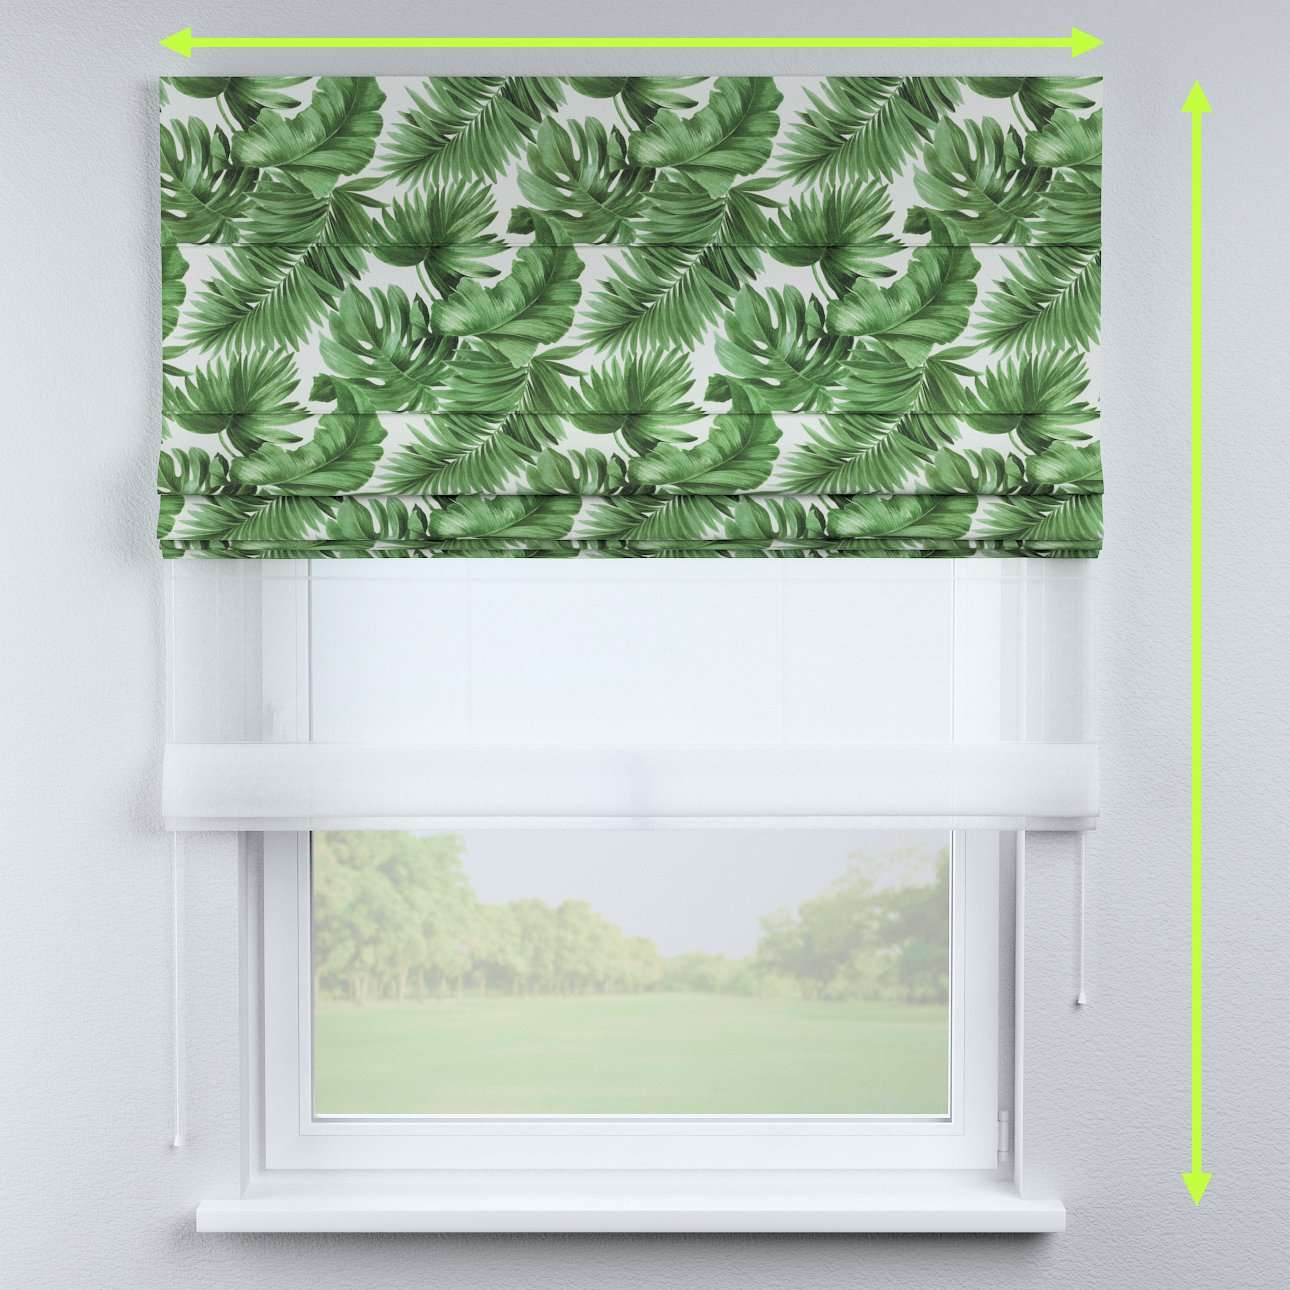 Voile and fabric roman blind (DUO II) in collection Urban Jungle, fabric: 141-71